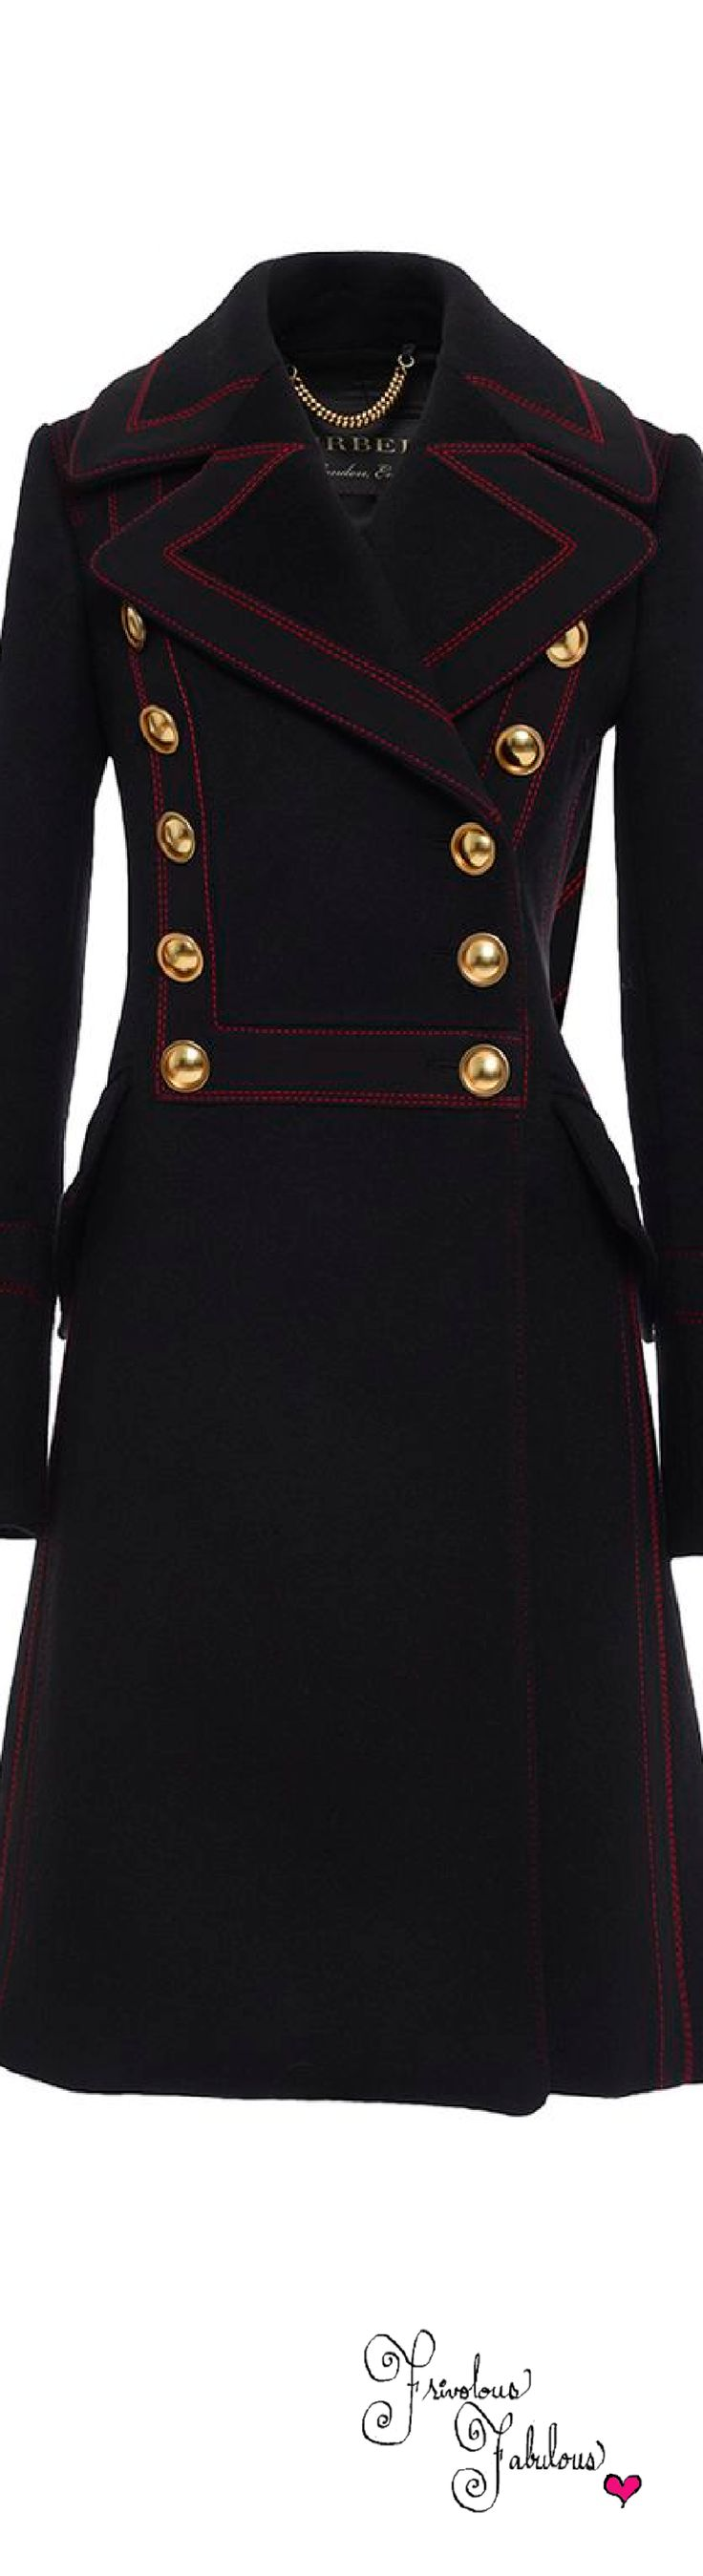 Frivolous Fabulous - Burberry Double Breasted Luggage Stitch Military Coat Pre Fall 2016